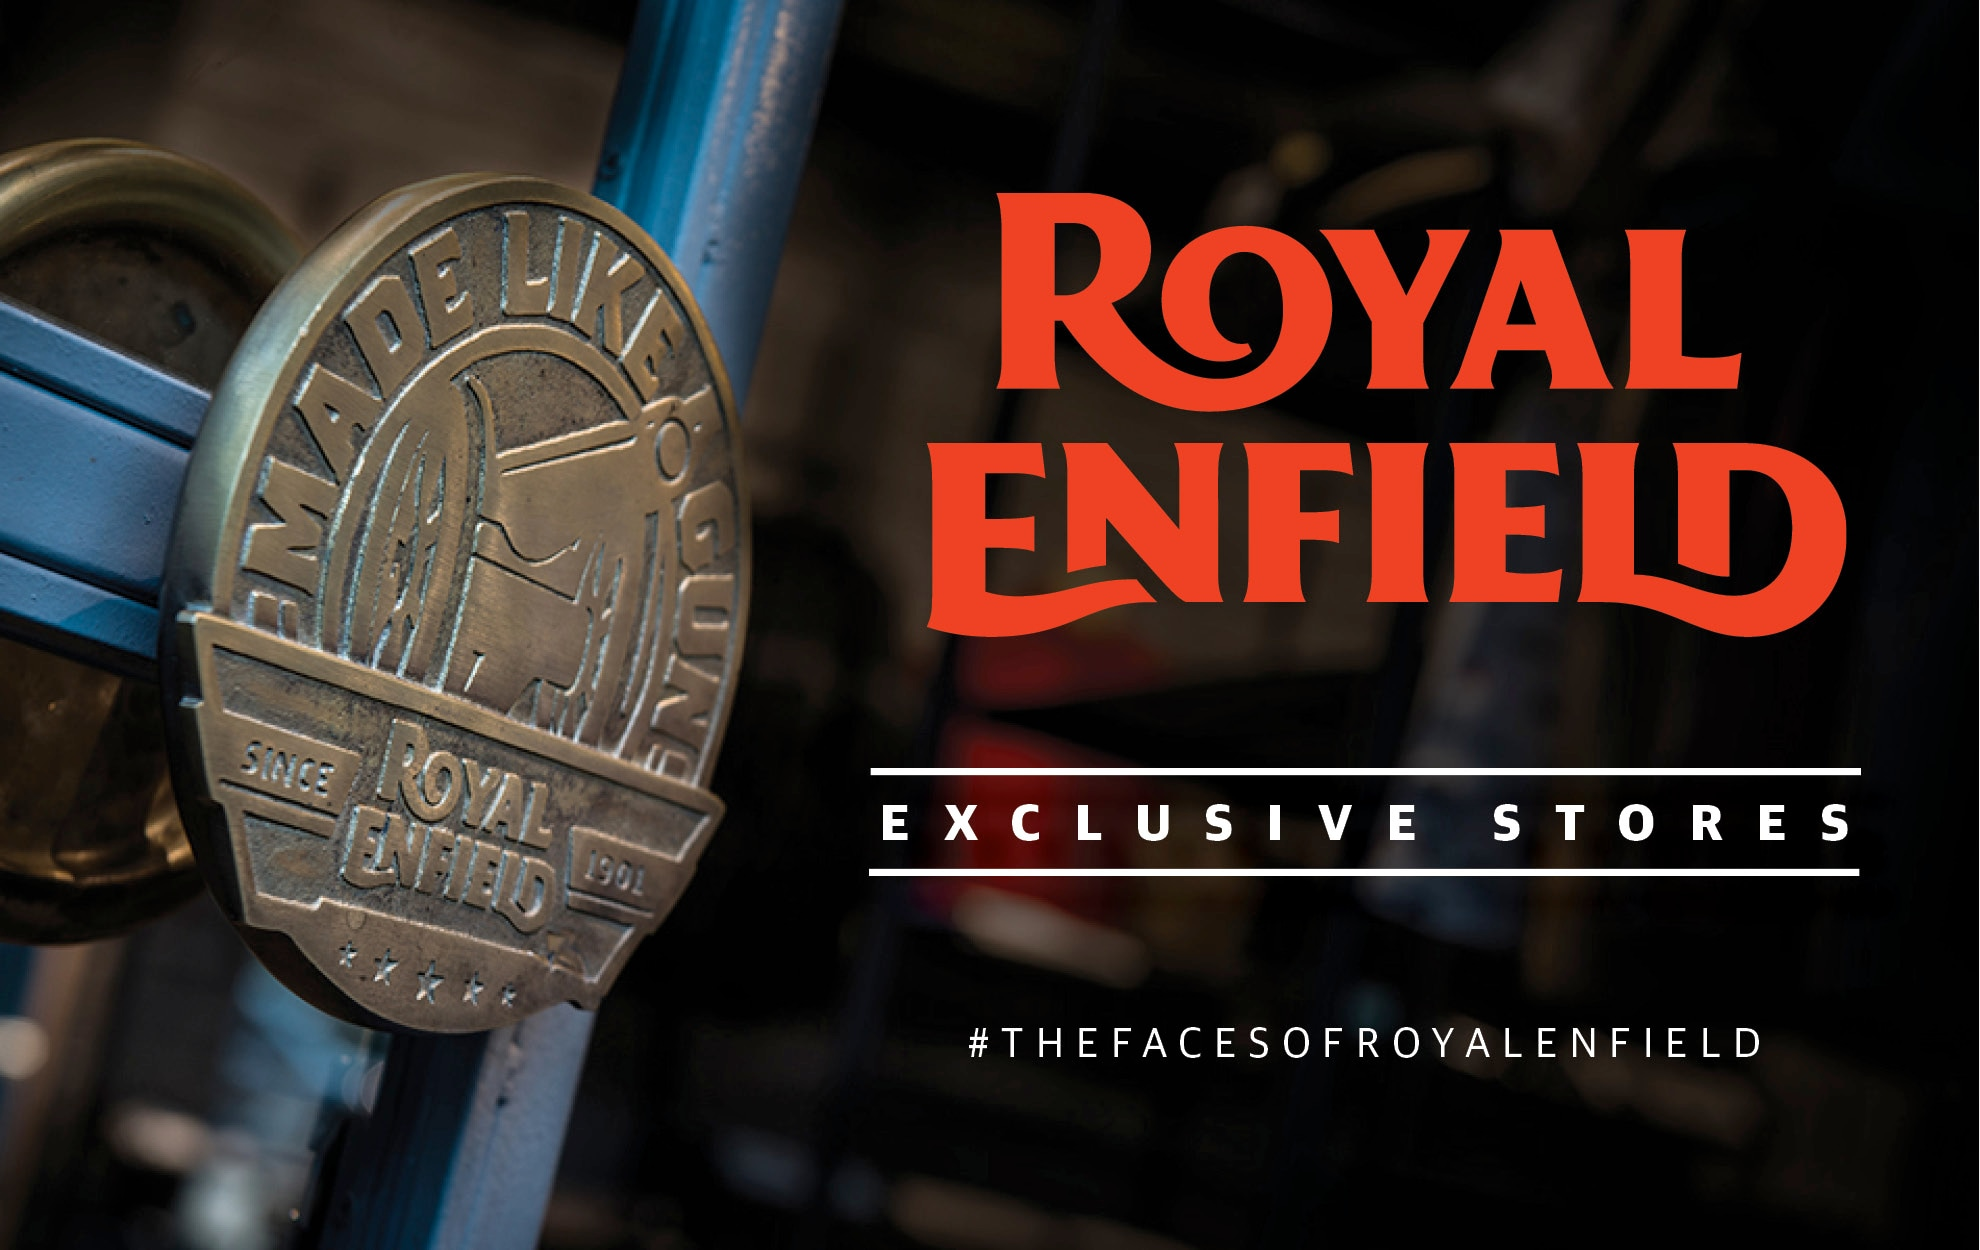 The Faces Of Royal Enfield